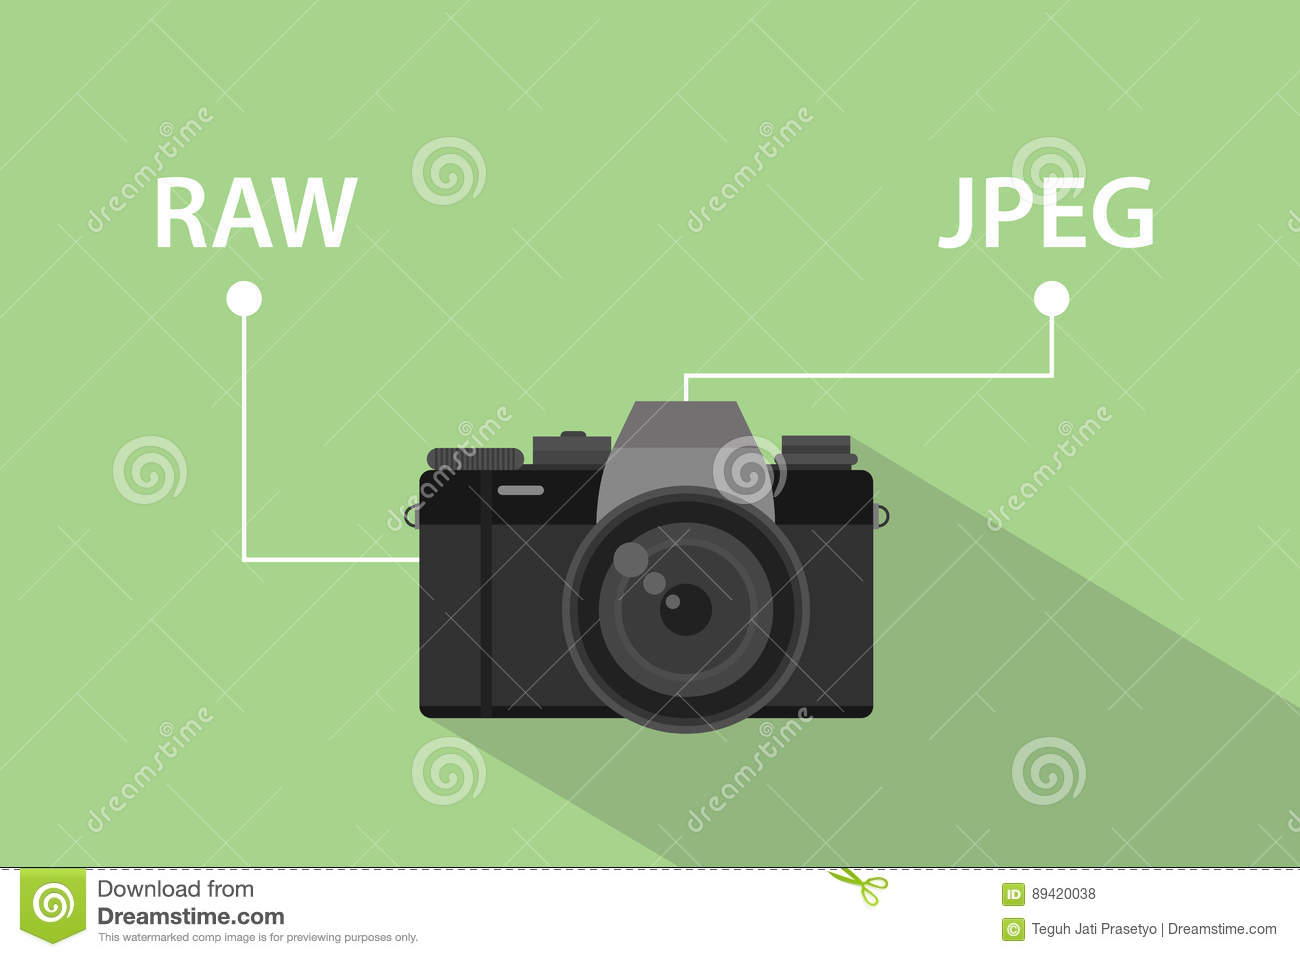 jpeg to raw converter free